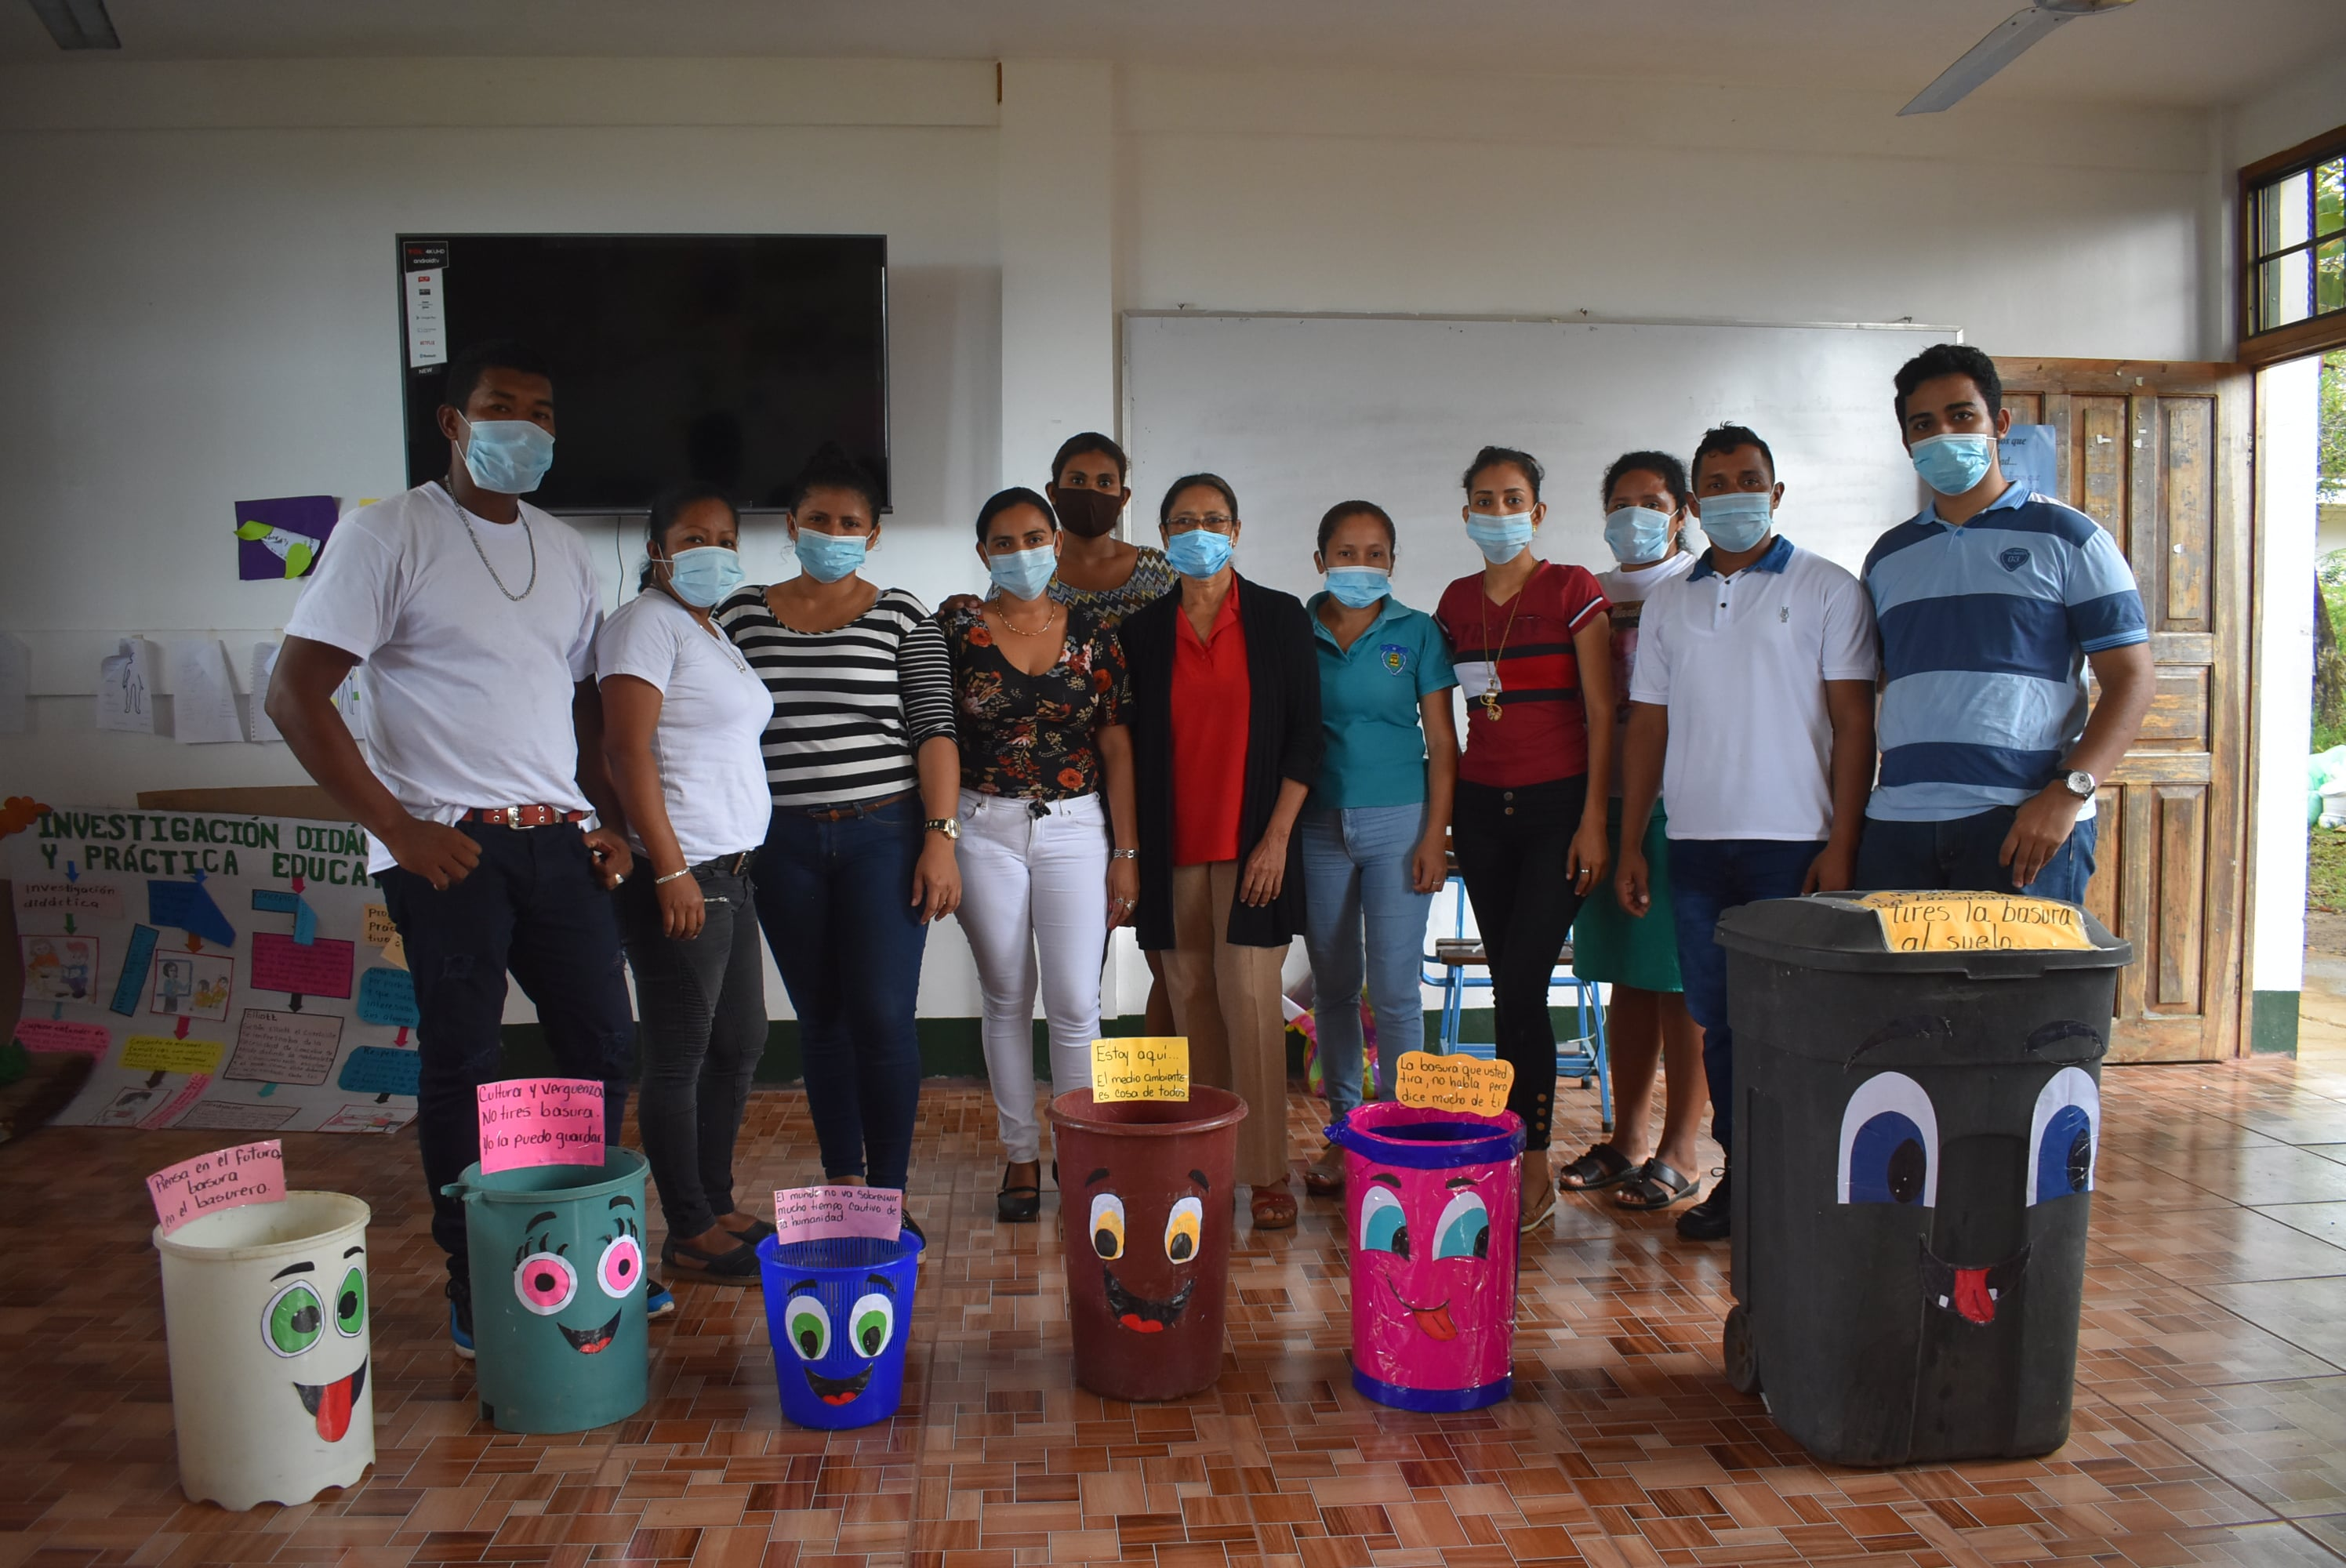 Students of URACCAN Bluefields enclosure decorating trash cans with environmental and eye-catching messages,